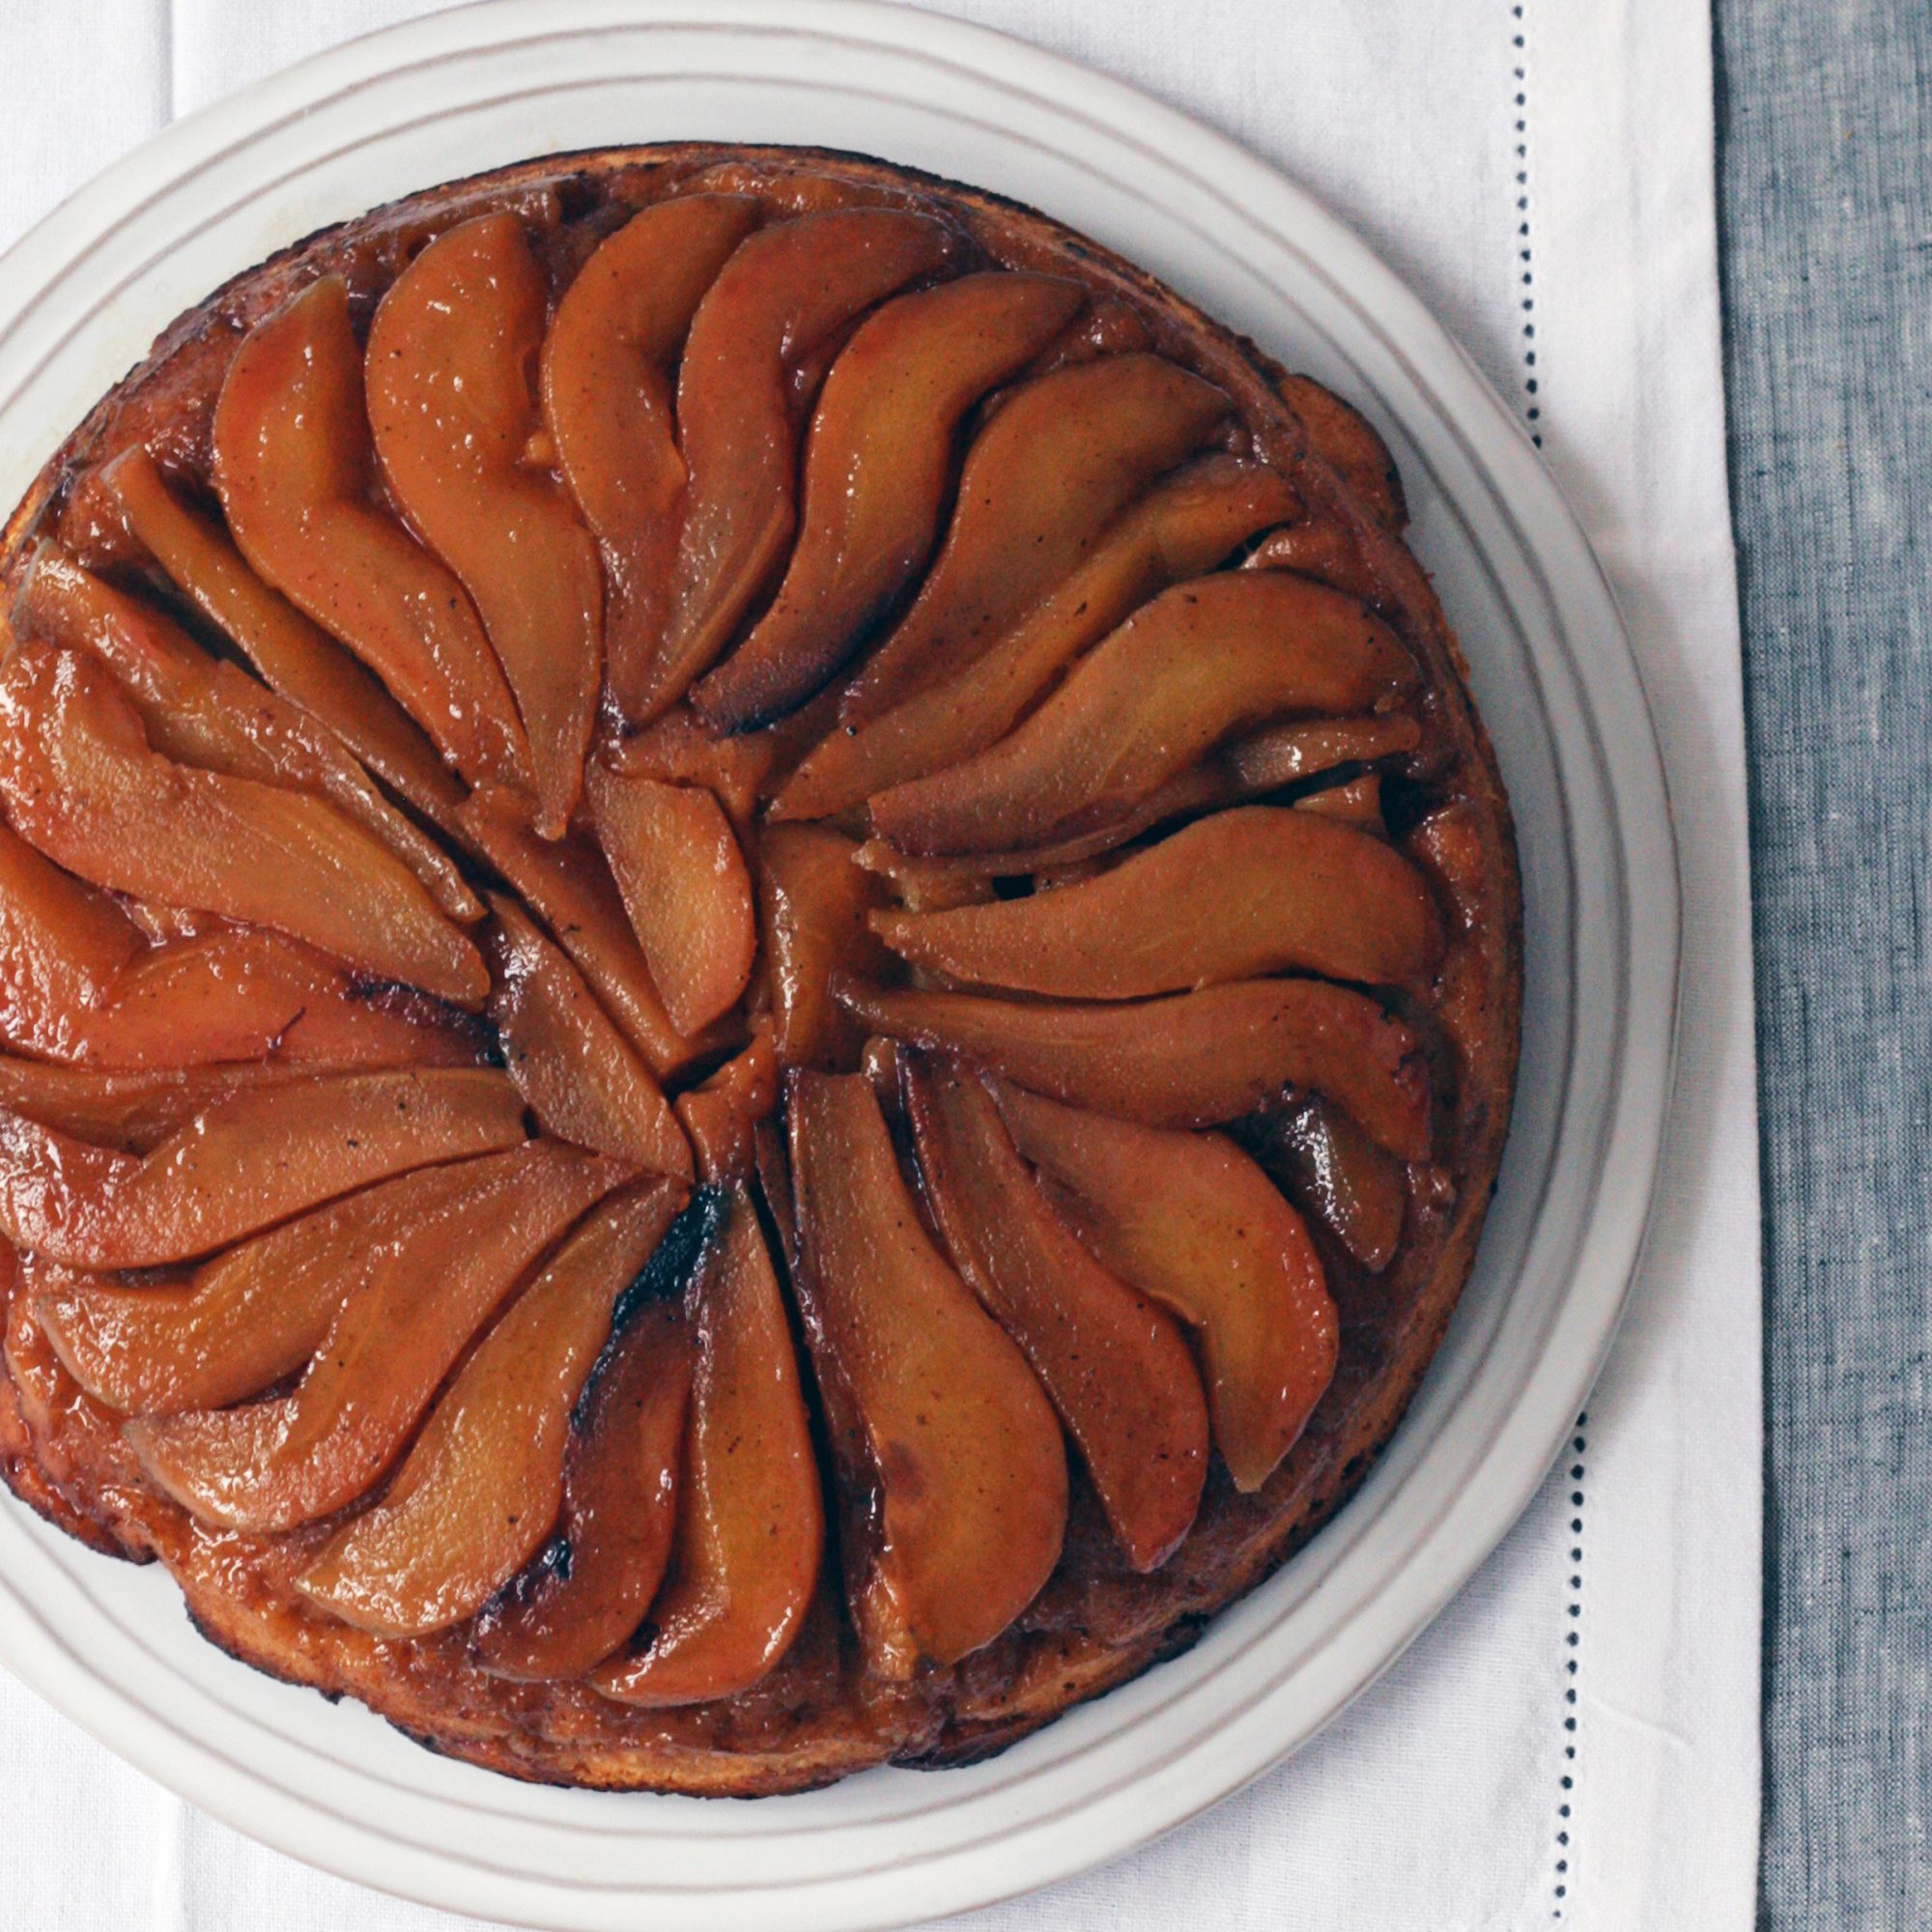 Ginger and Pear Upside-Down Cake